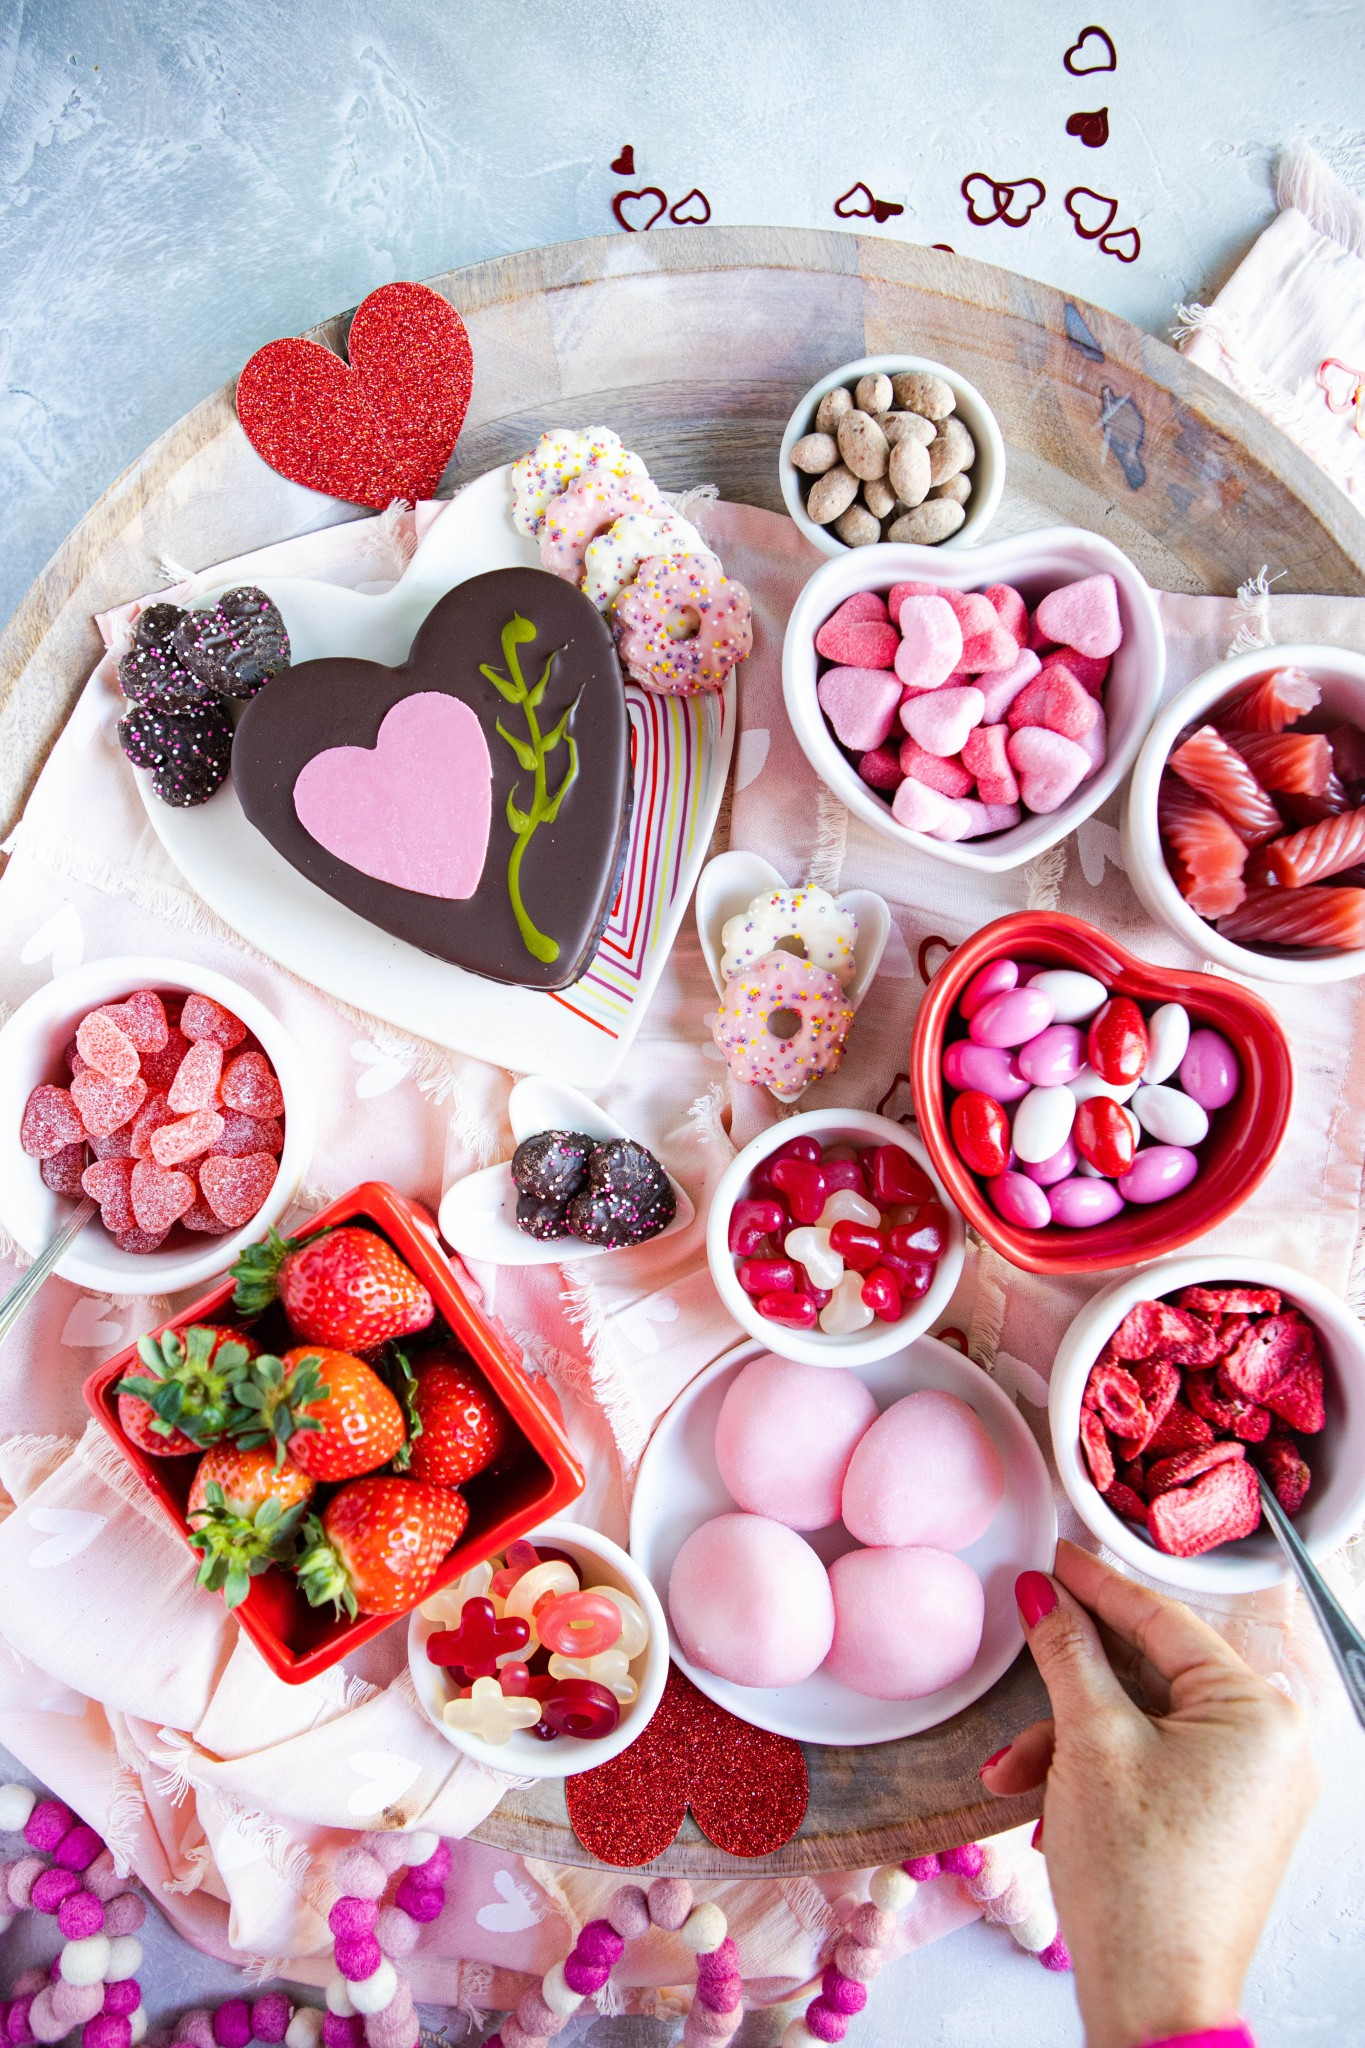 pink mochi ice cream surrounded by other pink and red sweets on a wooden platter